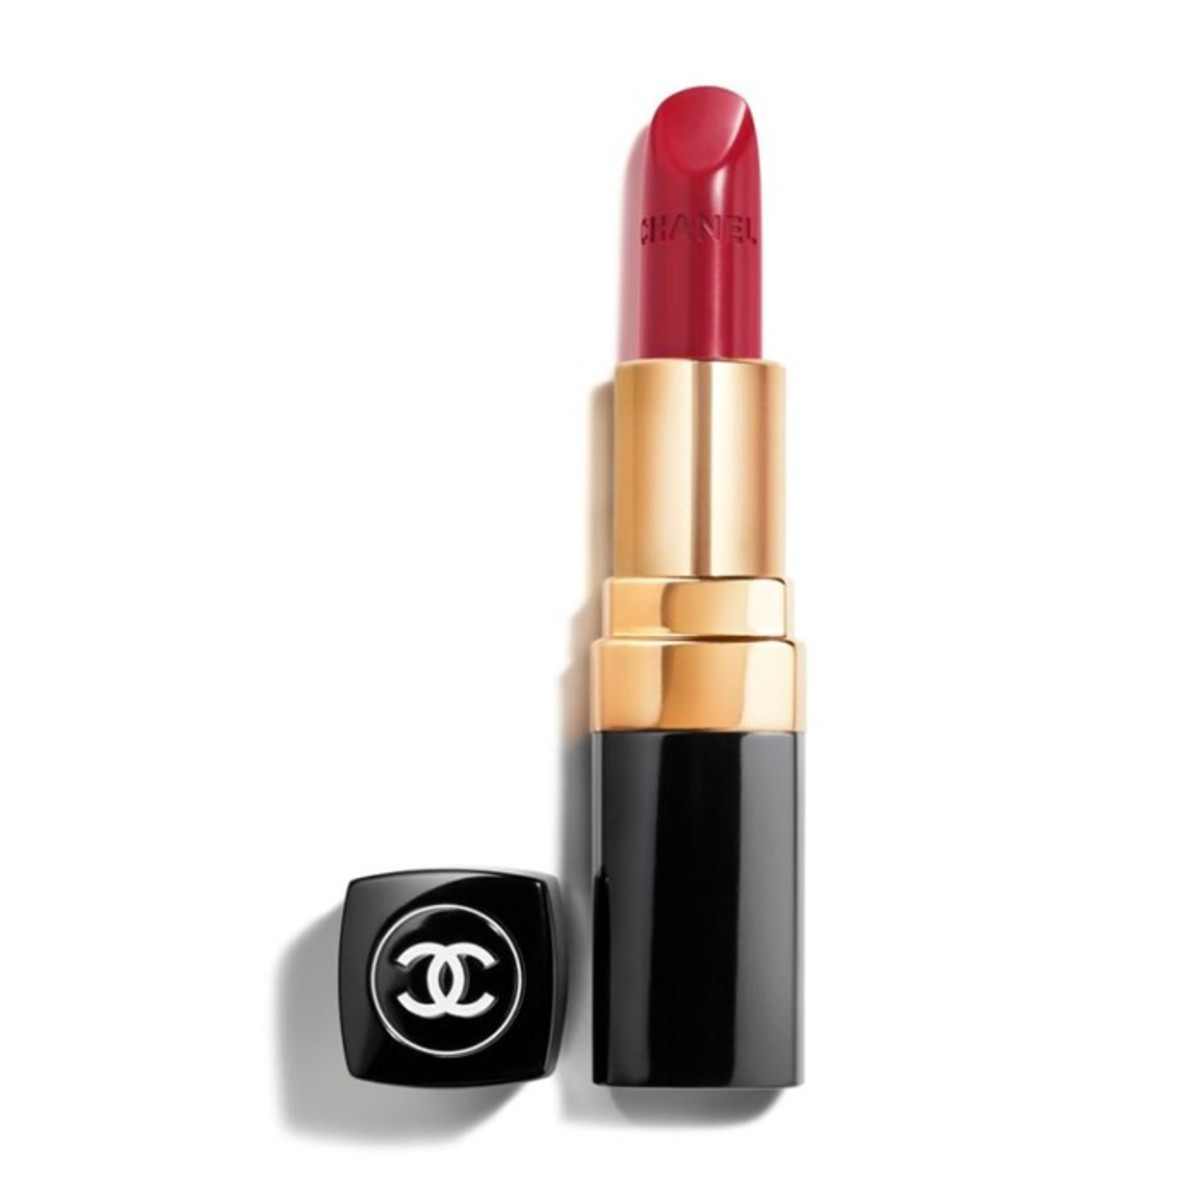 Rouge Coco Ultra Hydrating Lip Colour 3.5g #484 [Parallel Import]